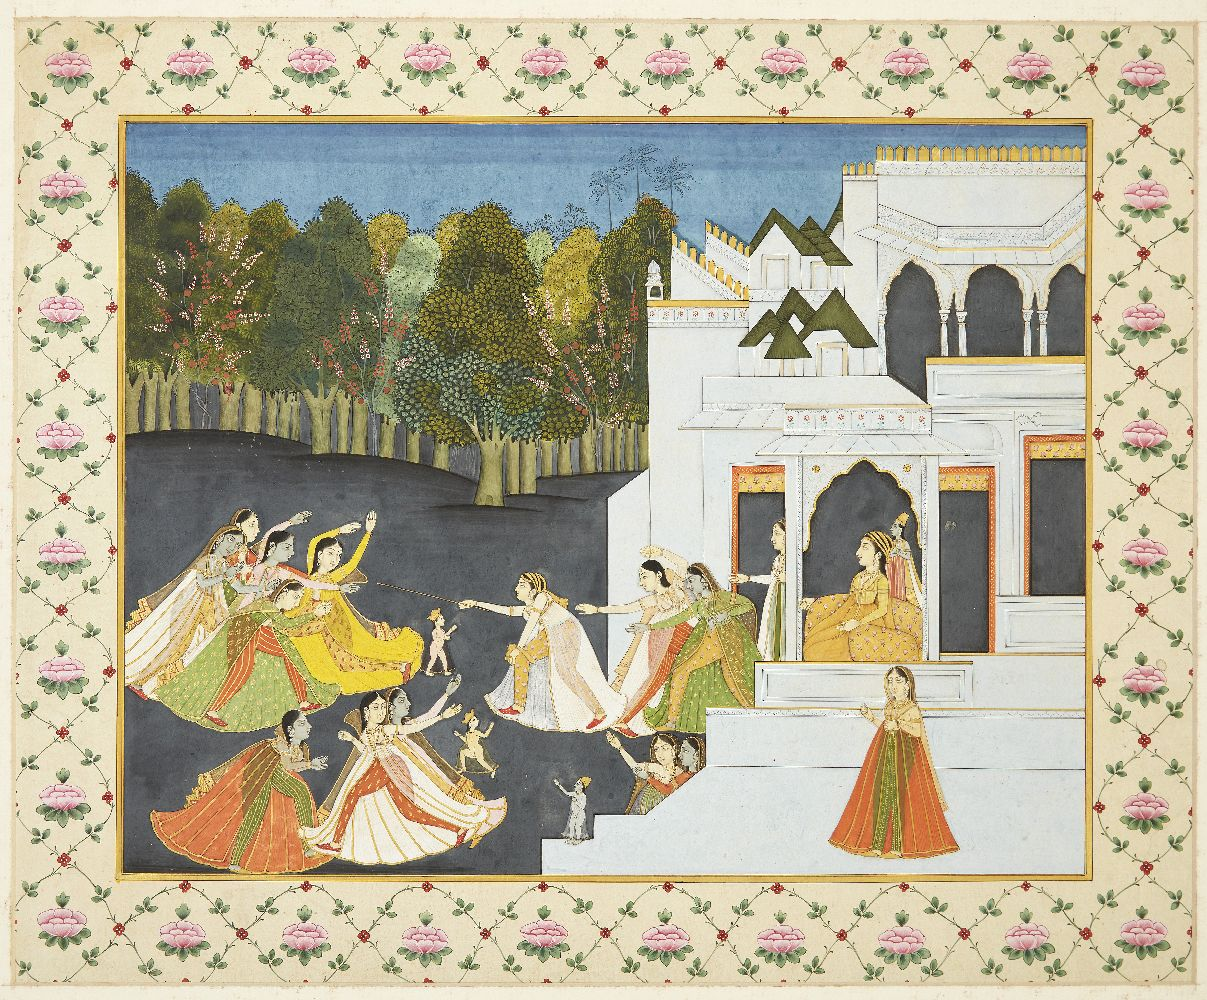 Women fleeing the palace, India, early 20th century, opaque pigments on paper heightened with